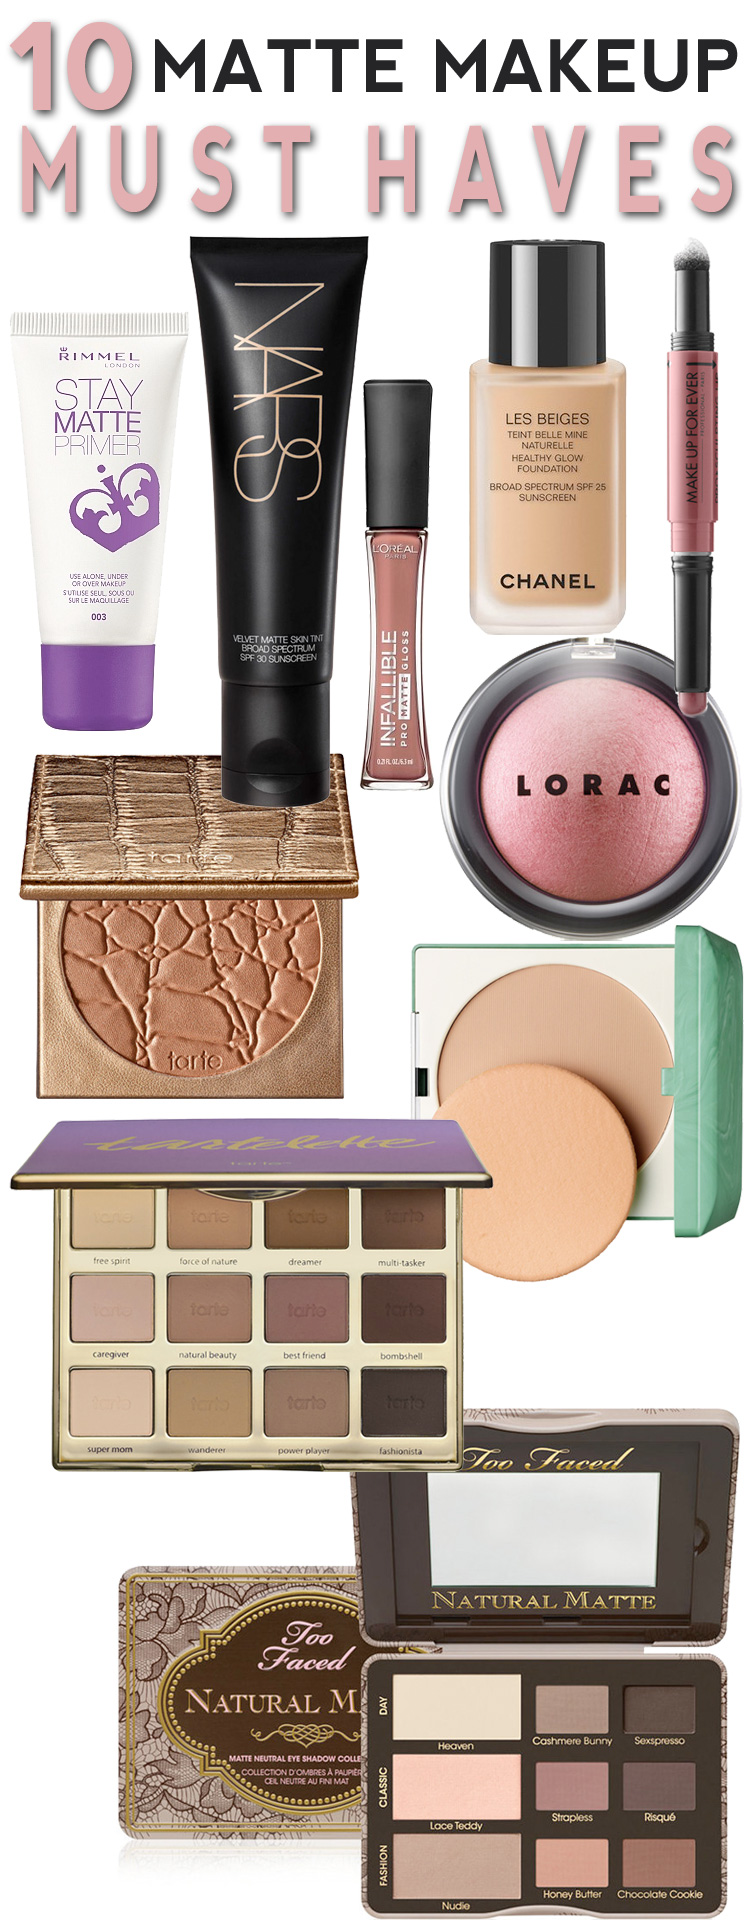 10 Matte Makeup Must-Haves to Keep Your Face Looking Fresh, Fab and Beautiful All Summer Long!